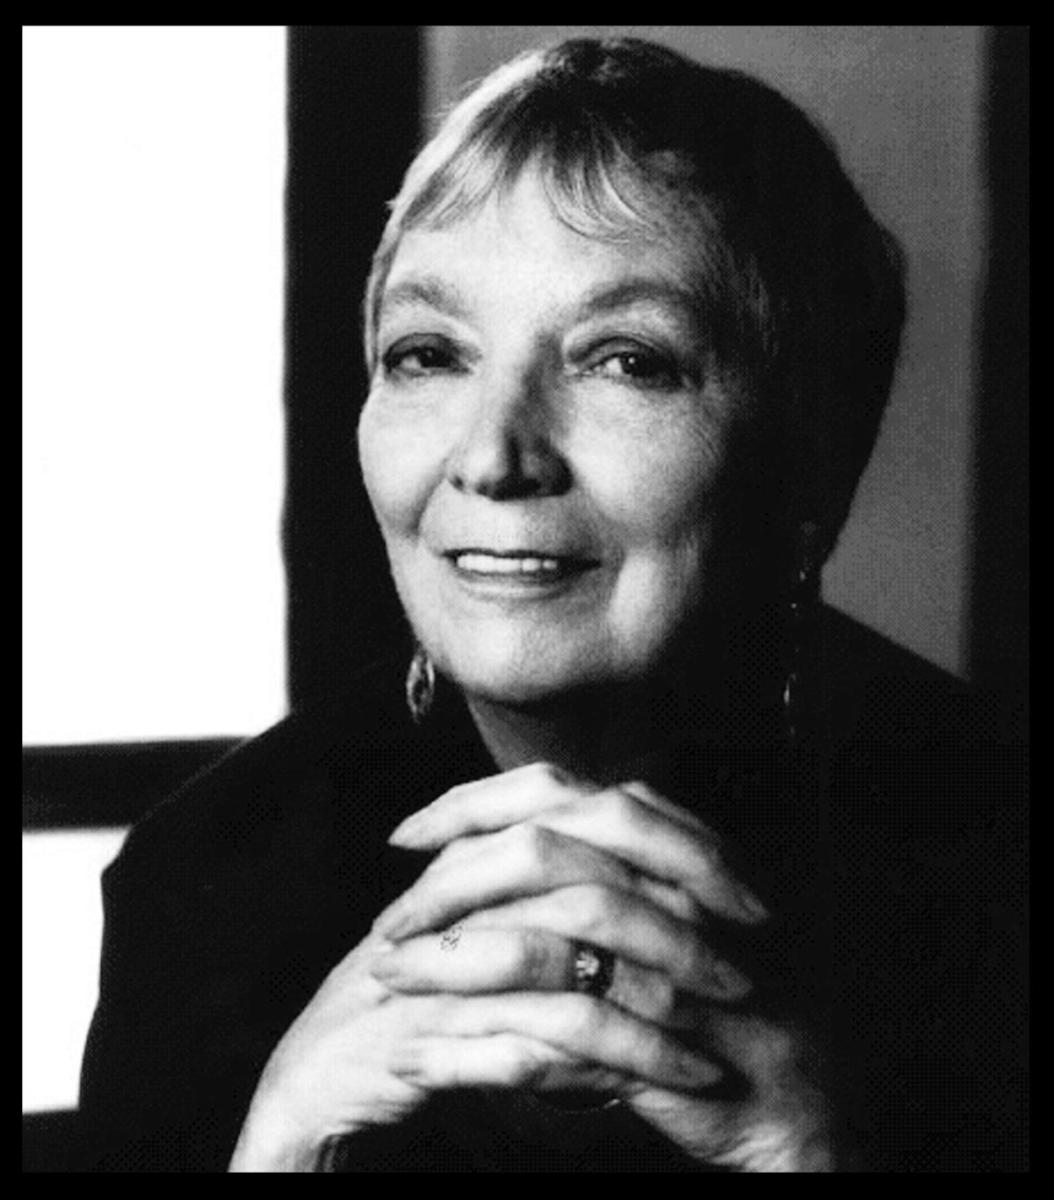 Author Madeleine L'Engle, circa 2000. (Credit: Everett)